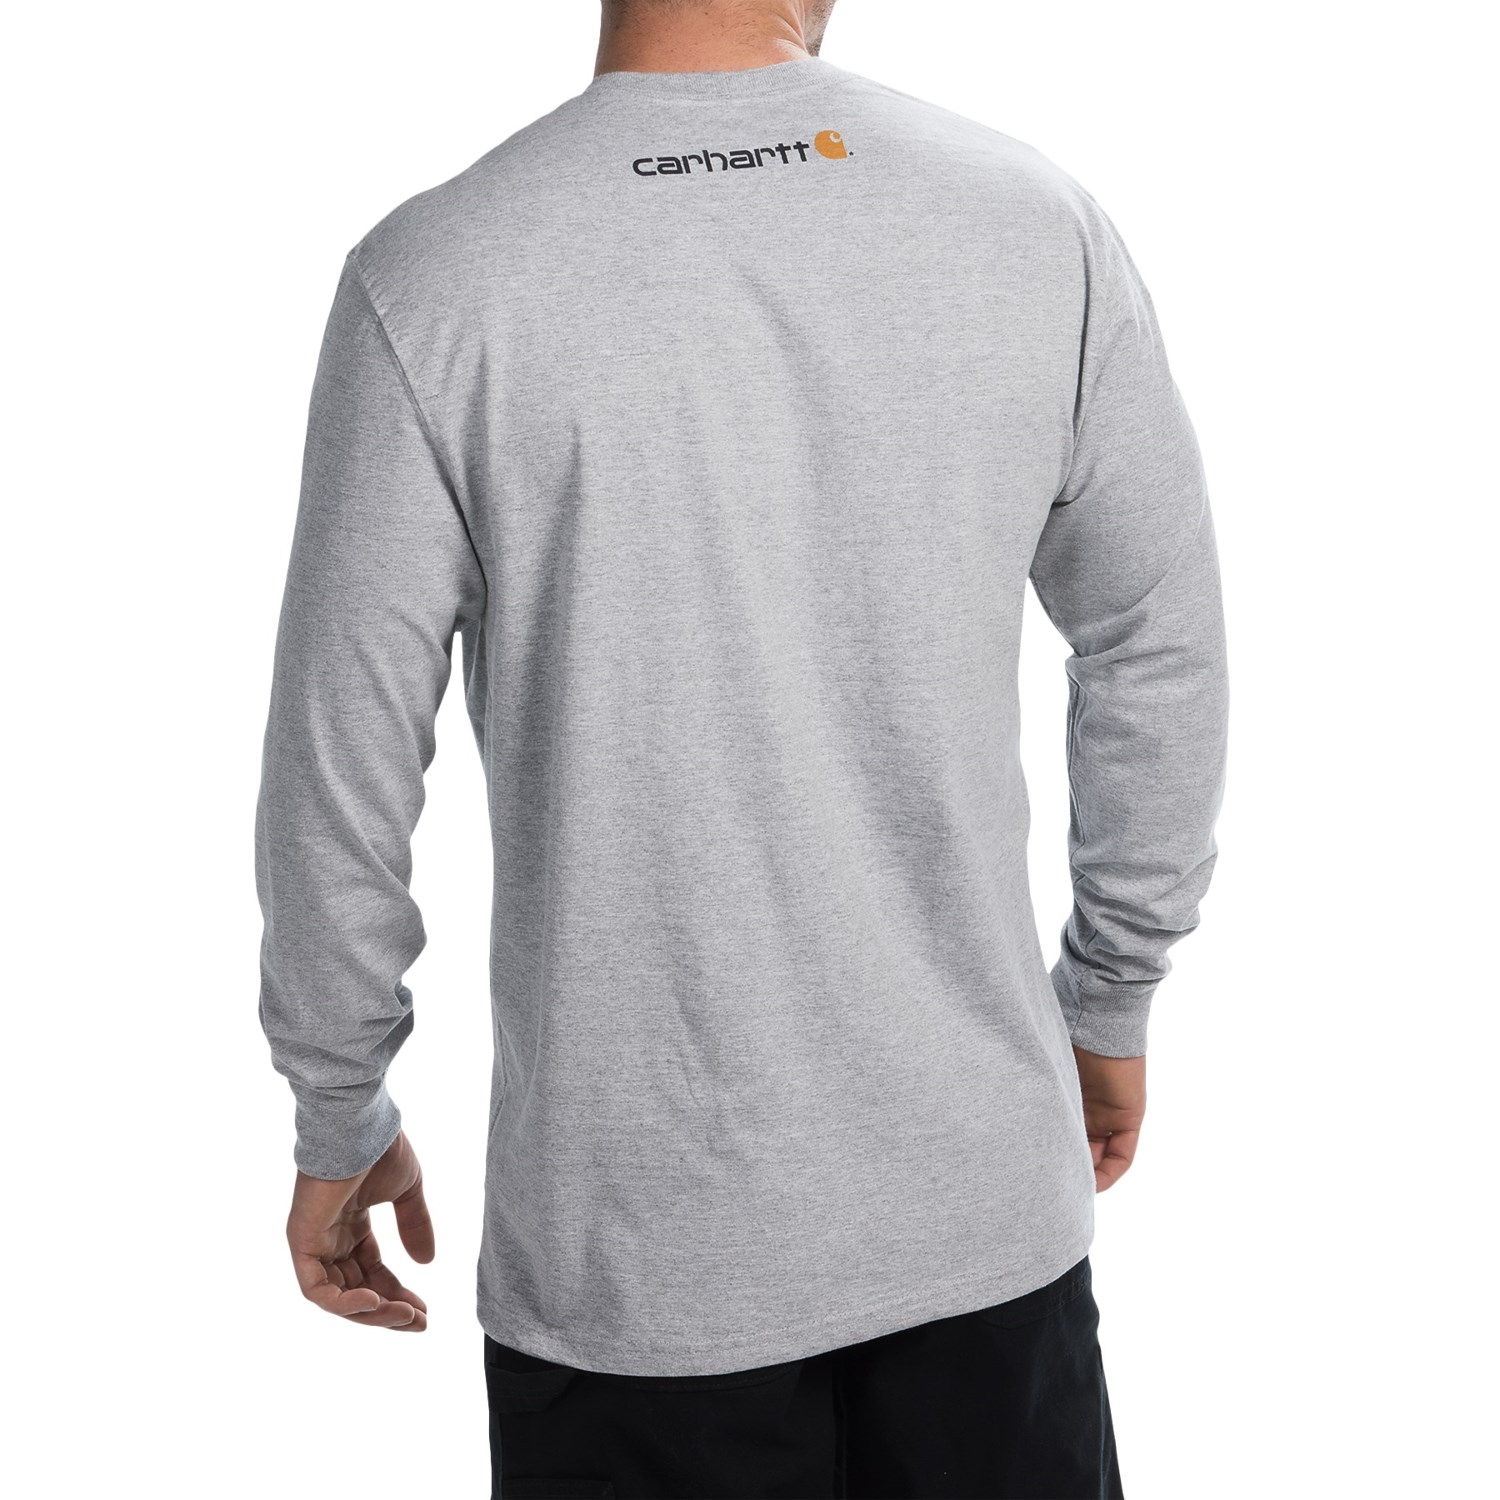 Carhartt signature logo t shirt for big and tall men for Big and tall long sleeve shirts